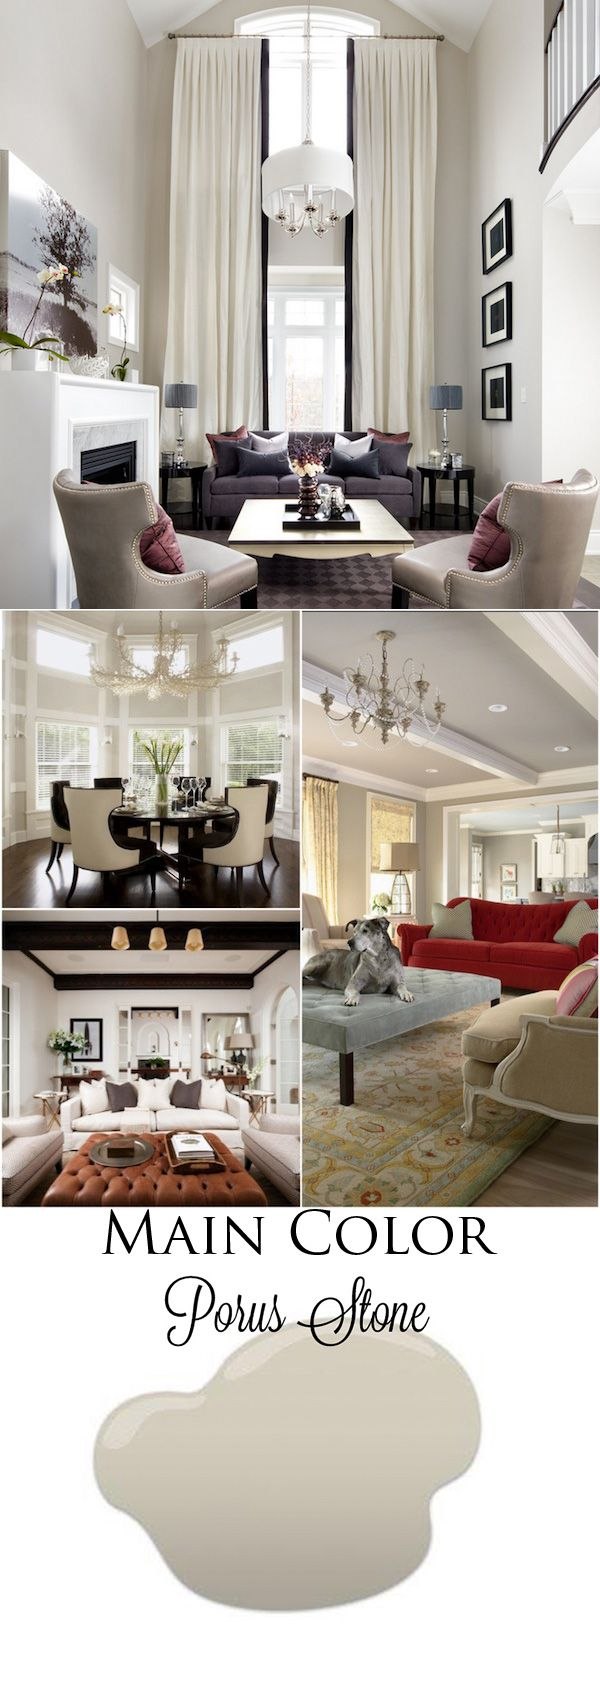 91 best images about great uses of dunn edwards paints for interiors on pinterest paint colors get the look and coffee